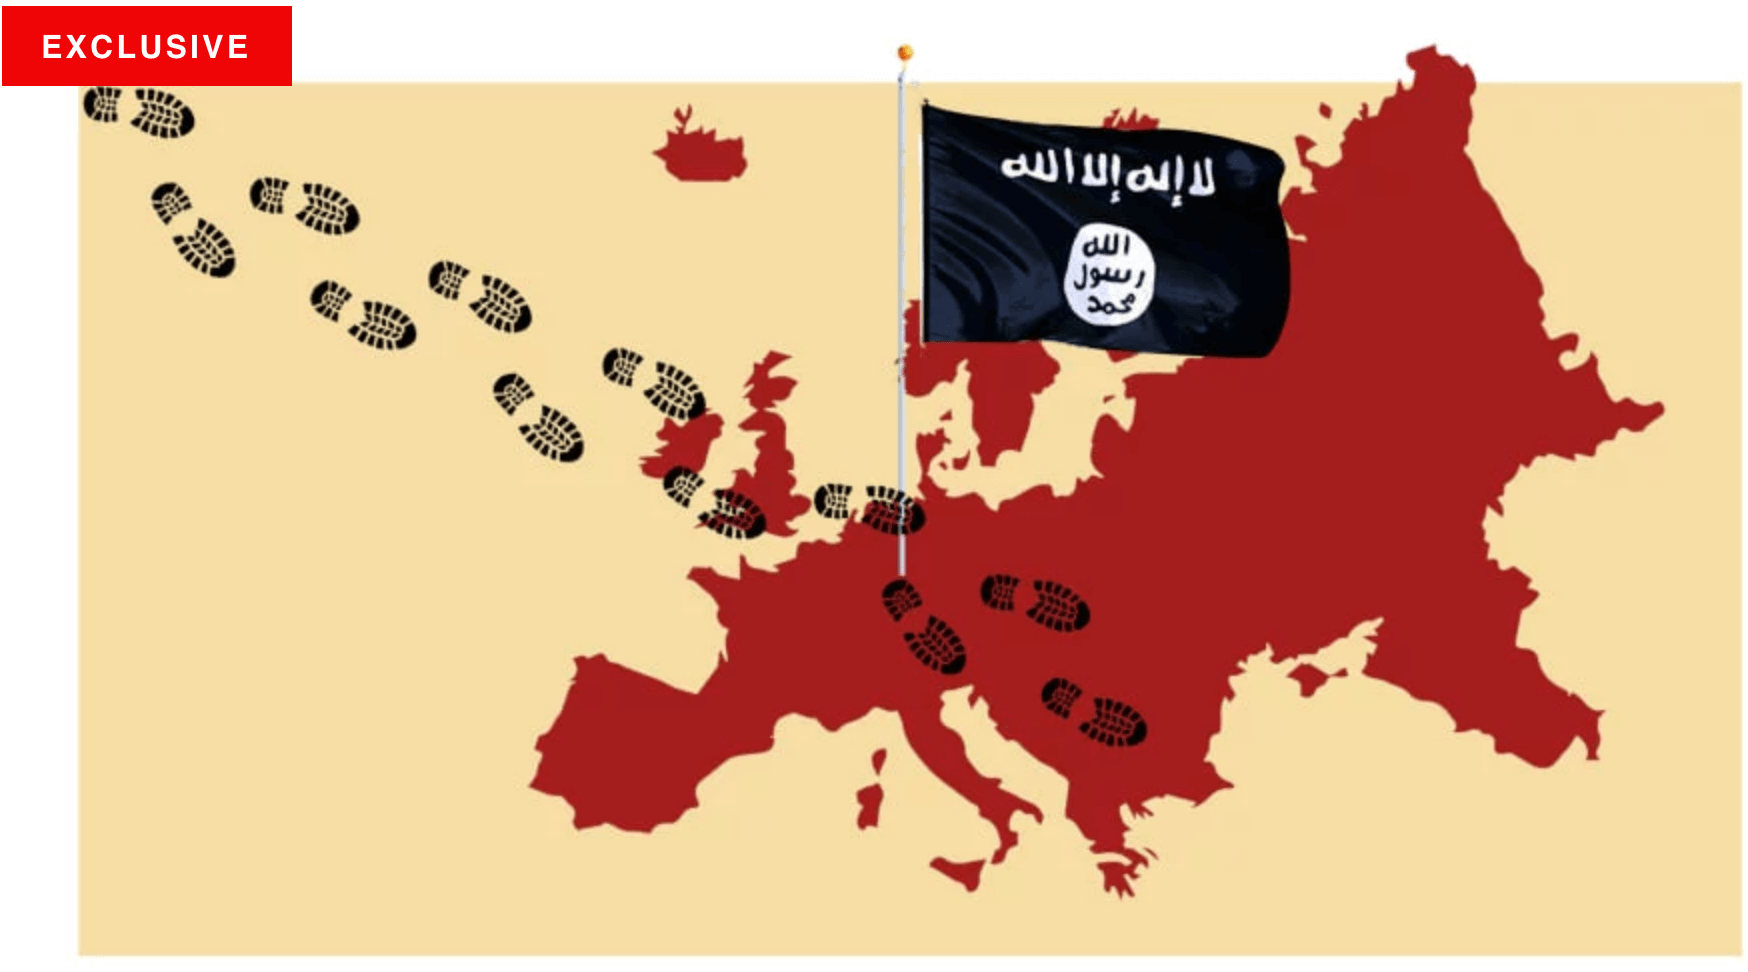 ISIS Smuggler: Sleeper Cells And 'Undead' Suicide Bombers Have Infiltrated Europe